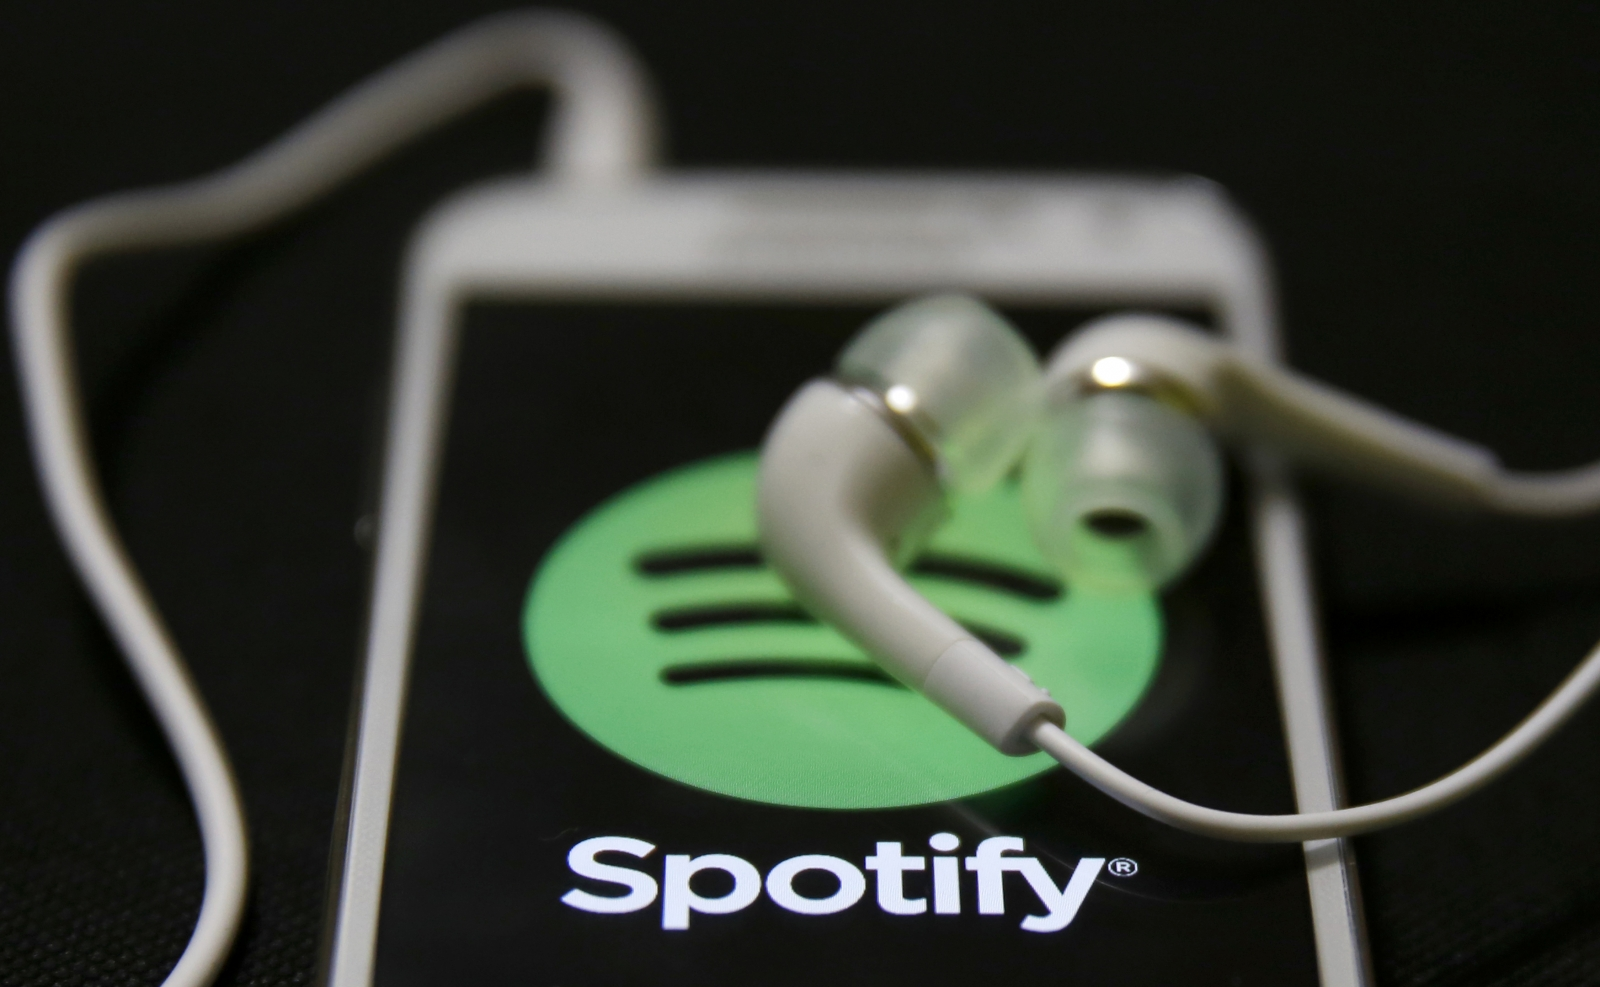 Spotify to acquire SoundCloud